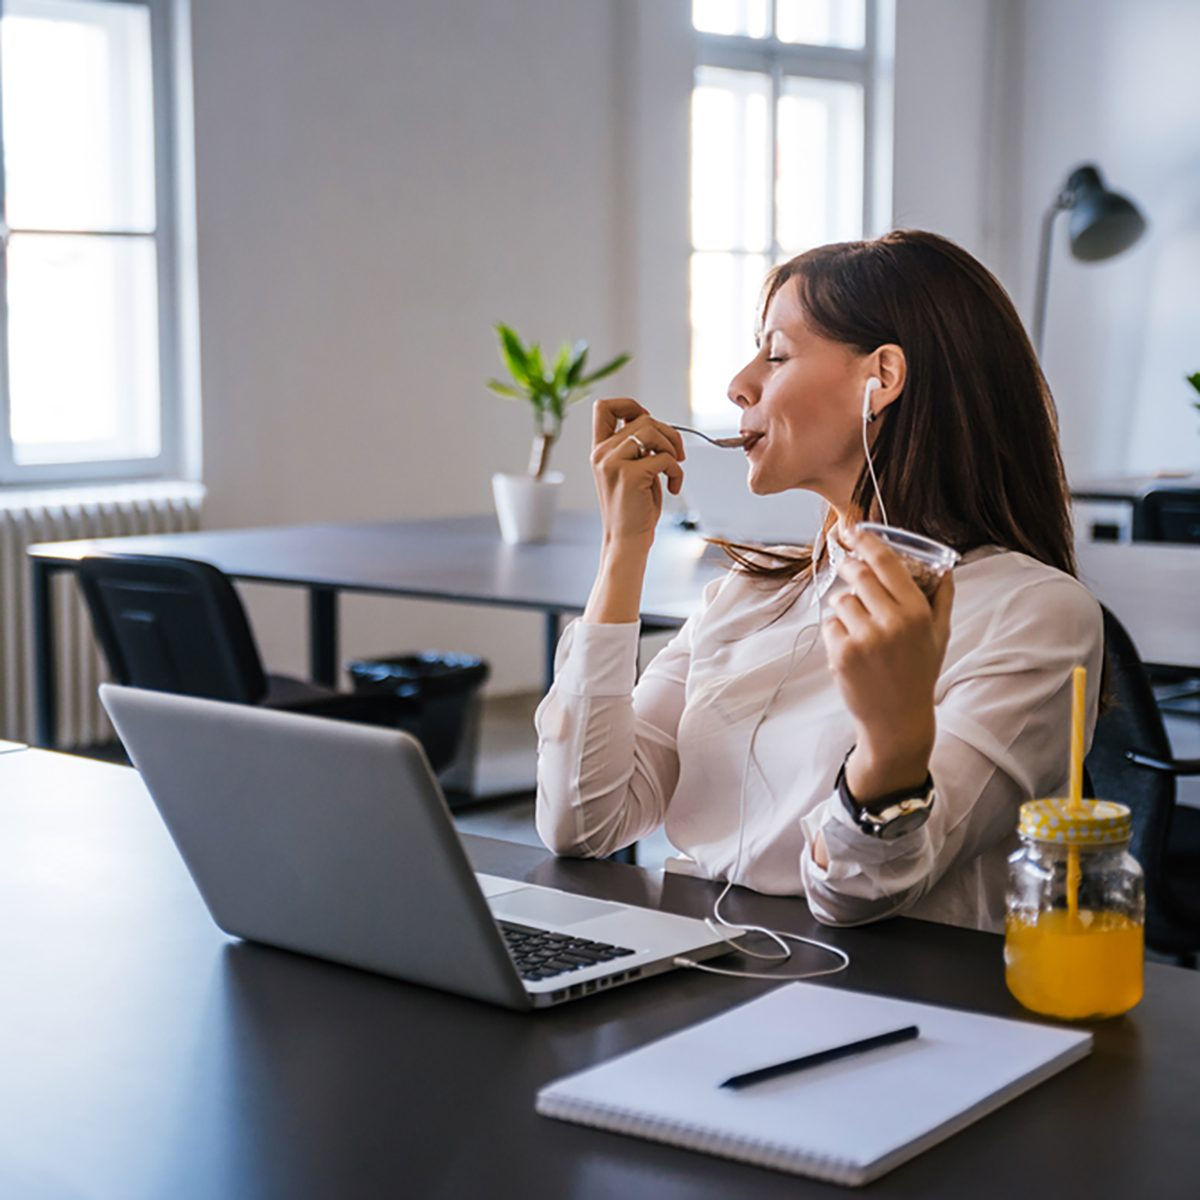 Woman relaxing after work, eating ice cream and listening to music